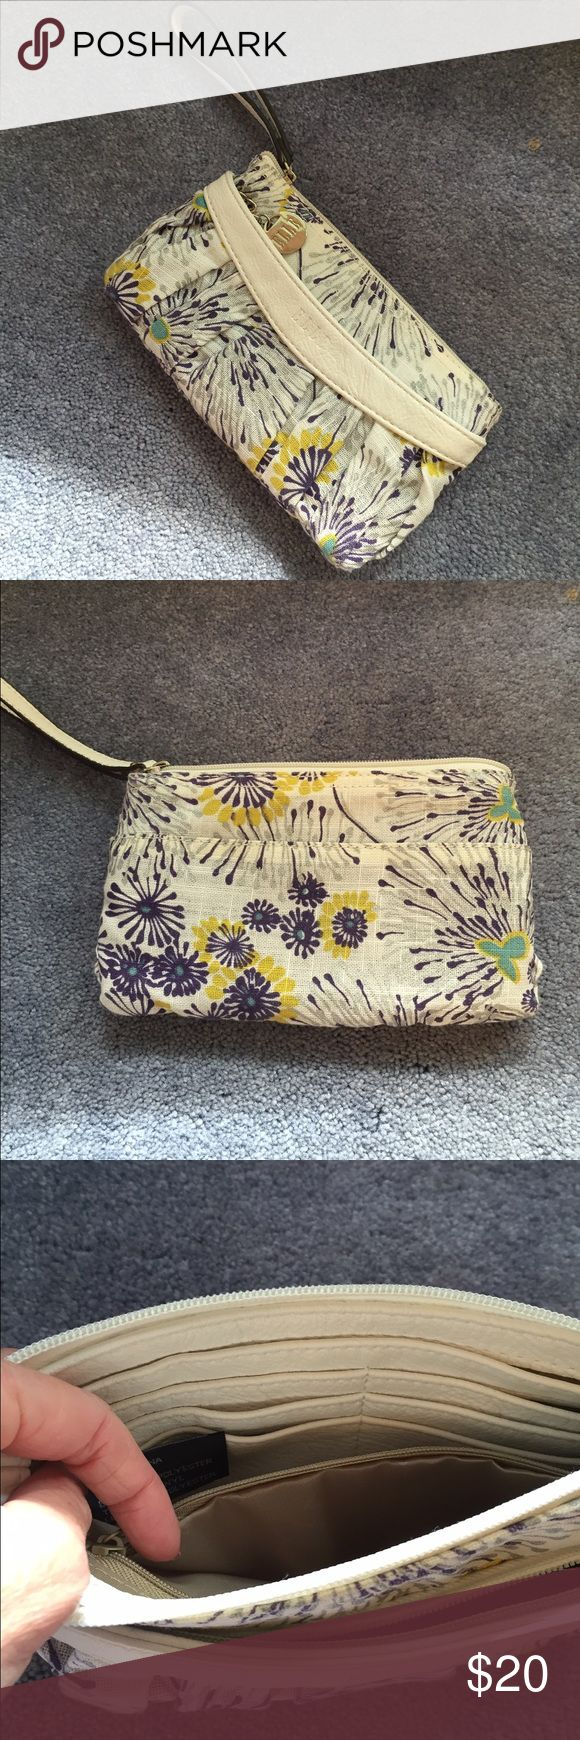 COLORFUL PURPLE CLUTCH EUC This colorful pretty clutch has lots of compartments and slots for 6 cards. 2 zipper compartments and a slot for bills and a back slot. Fabulously fashionable! Elle Bags Clutches & Wristlets